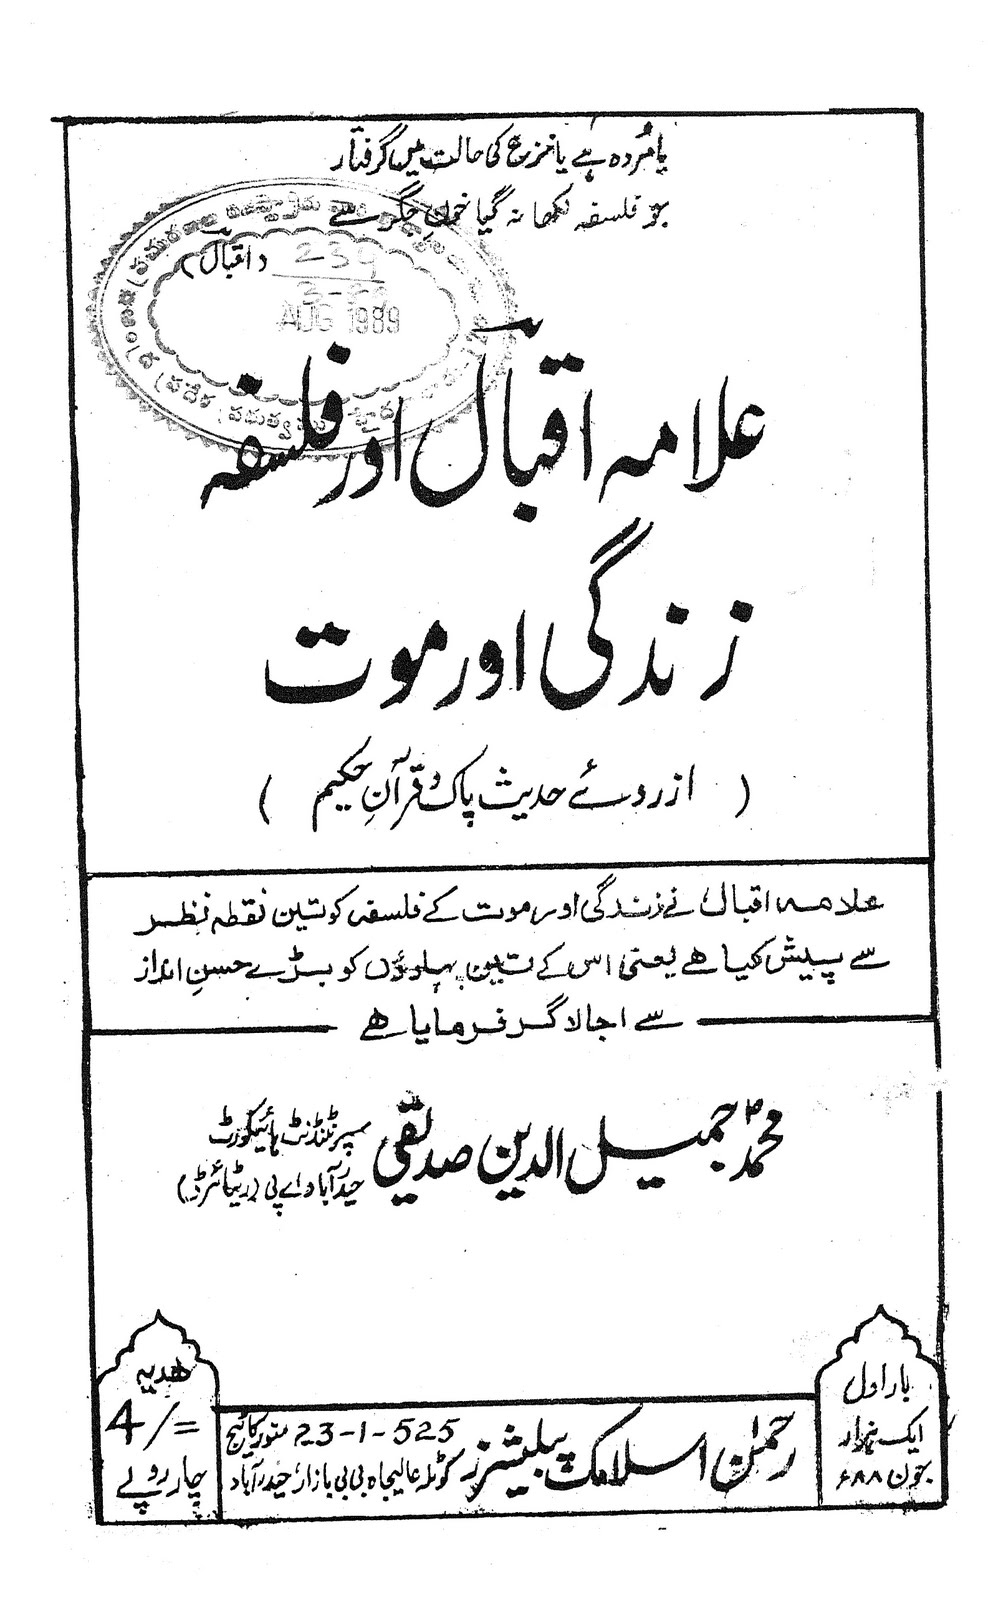 allama iqbal essay in urdu for class  allama iqbal essay in urdu for class 8